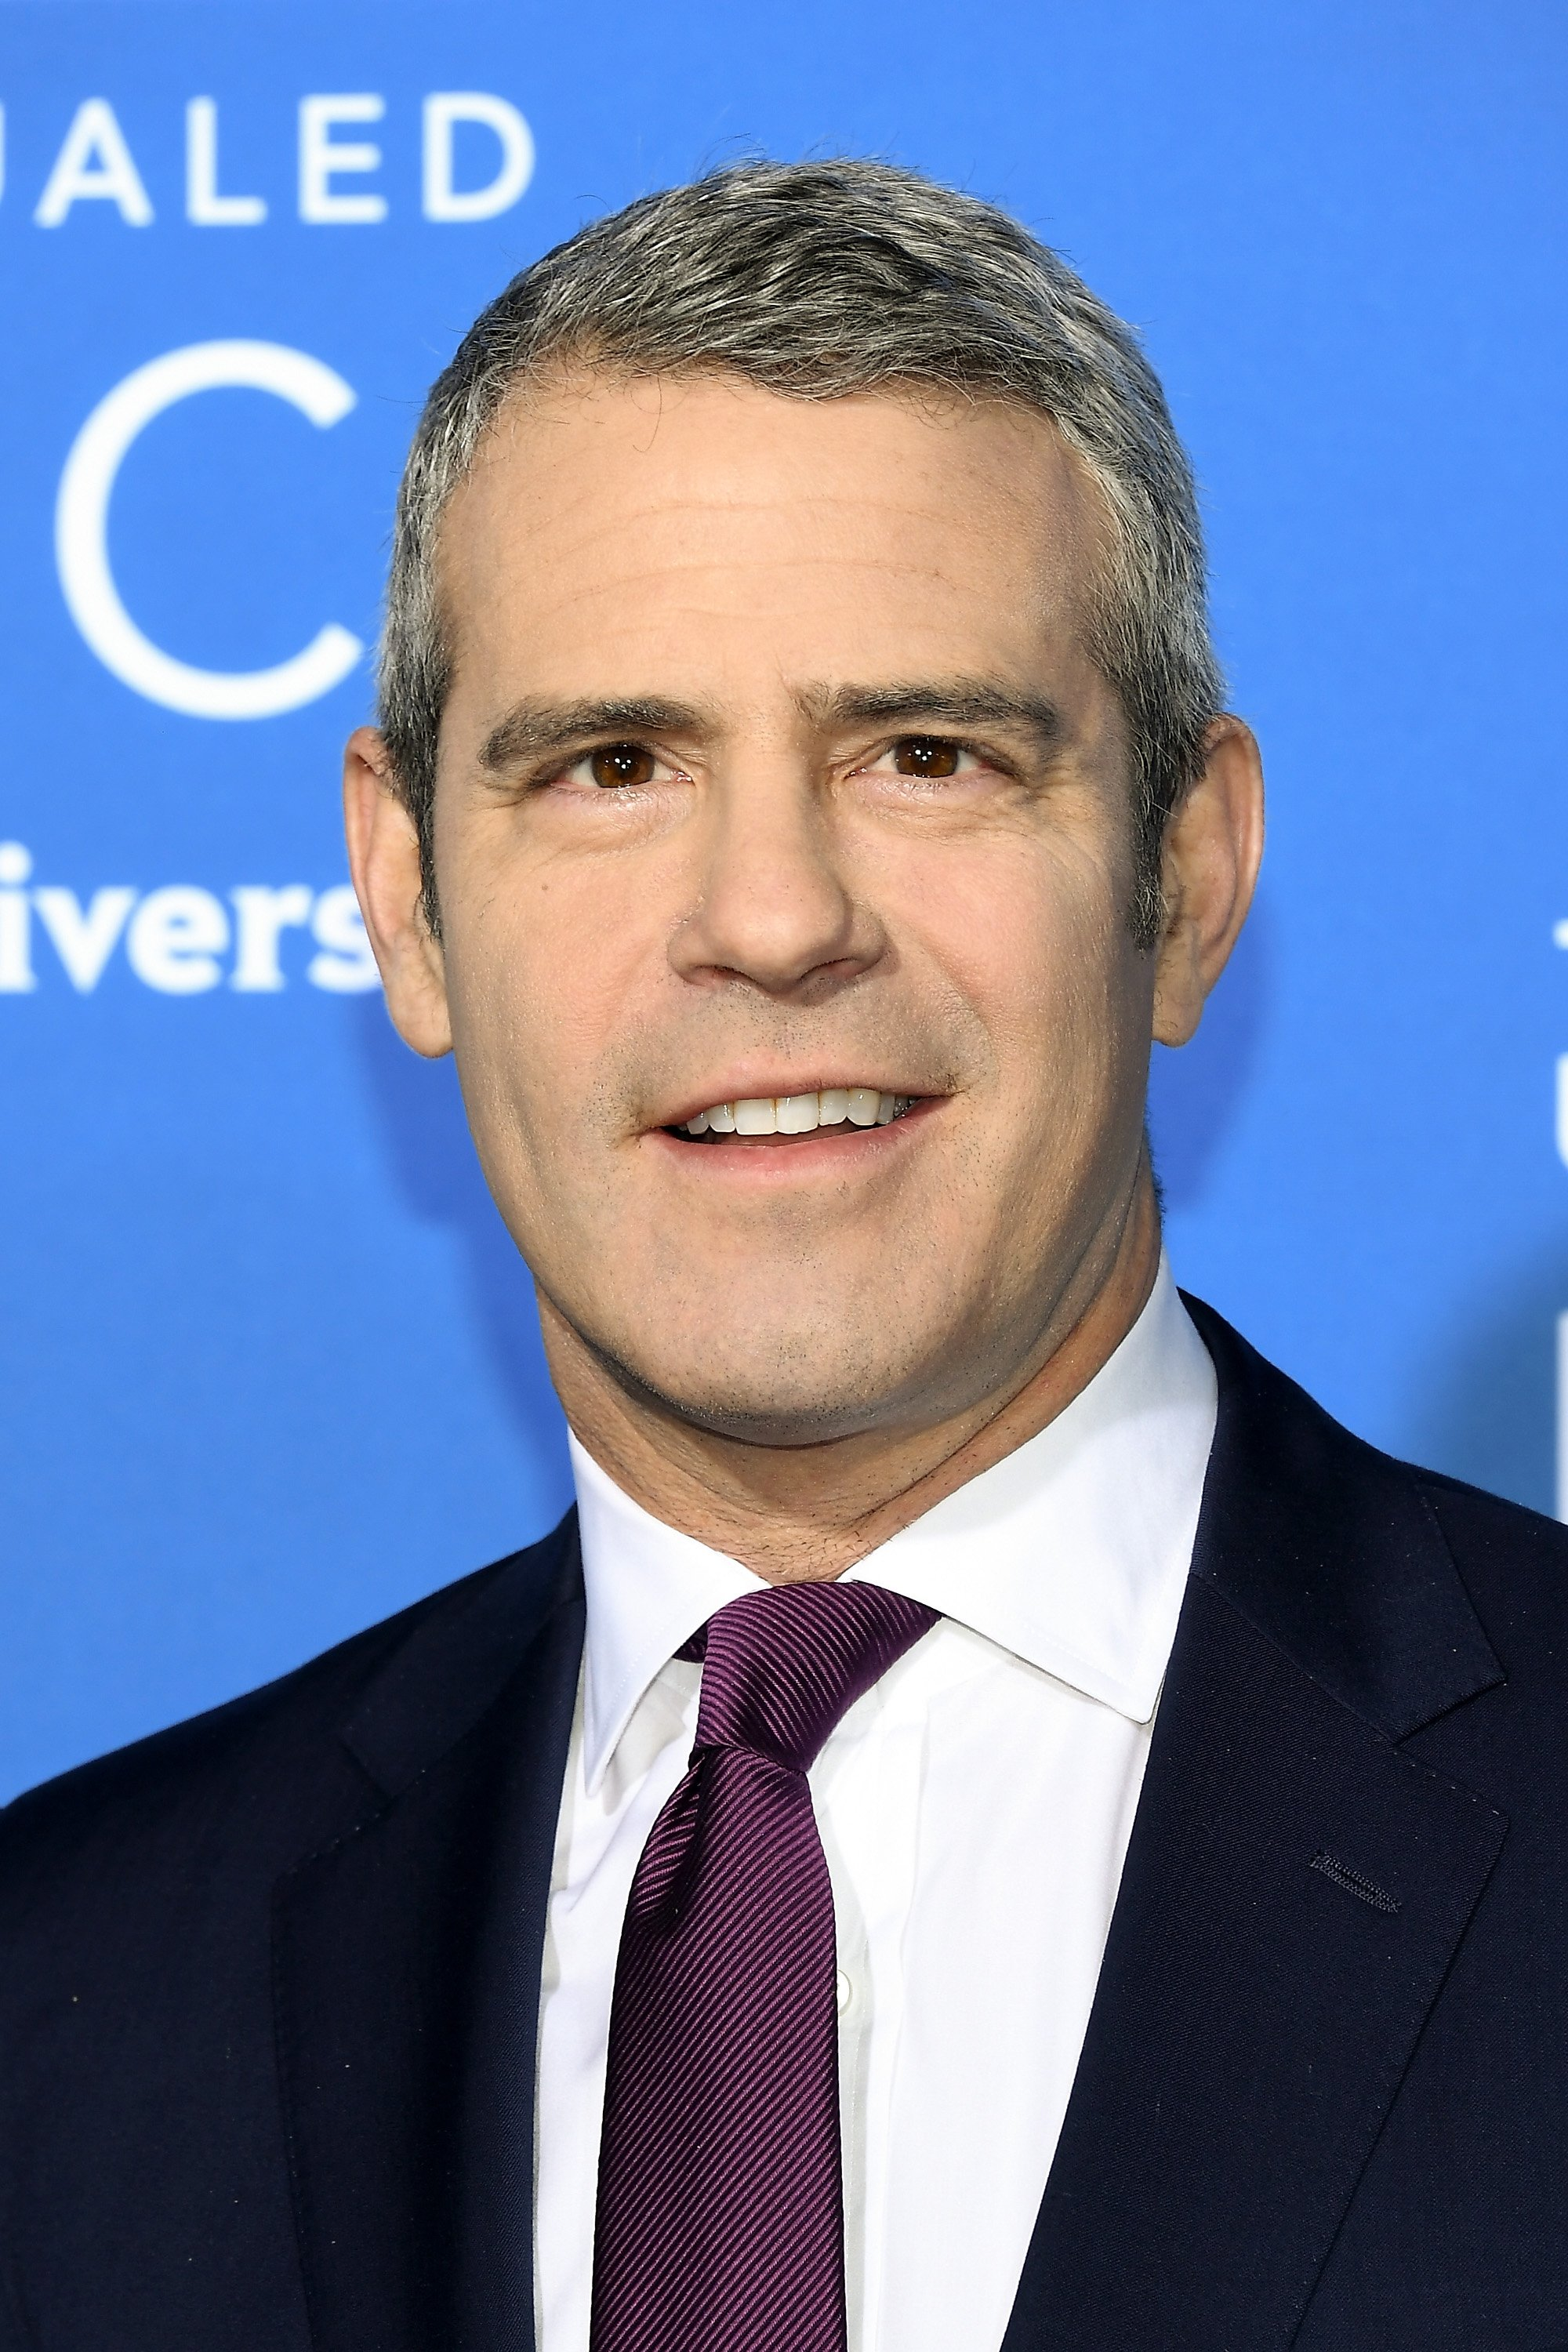 Andy Cohen attends the NBC Universal Upfront at Radio City Music Hall on May 15, 2017 in New York City. | Source: Getty Images.